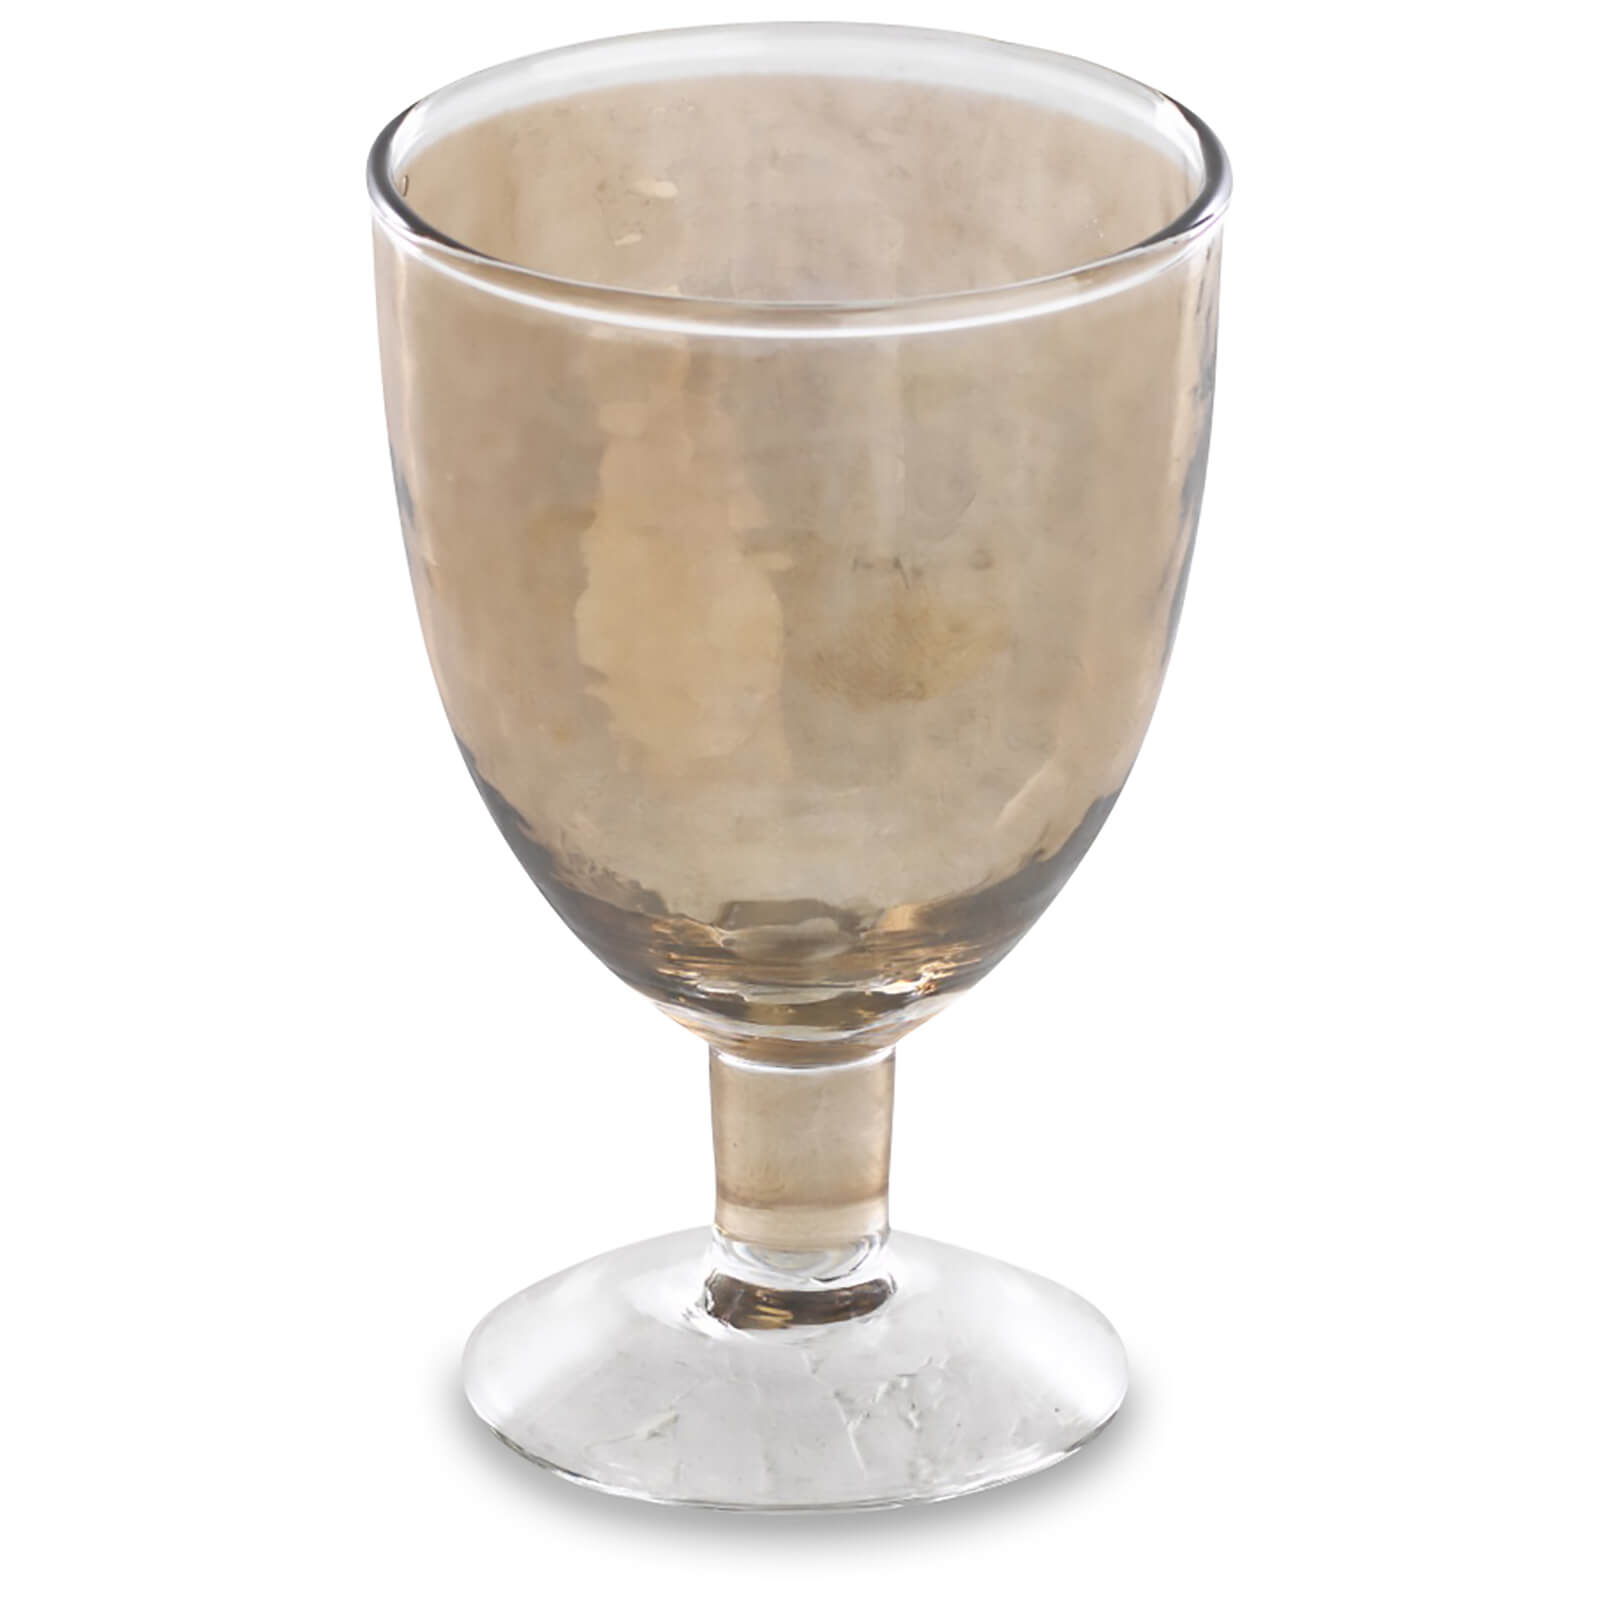 Nkuku Ozari Wine Glass - Copper